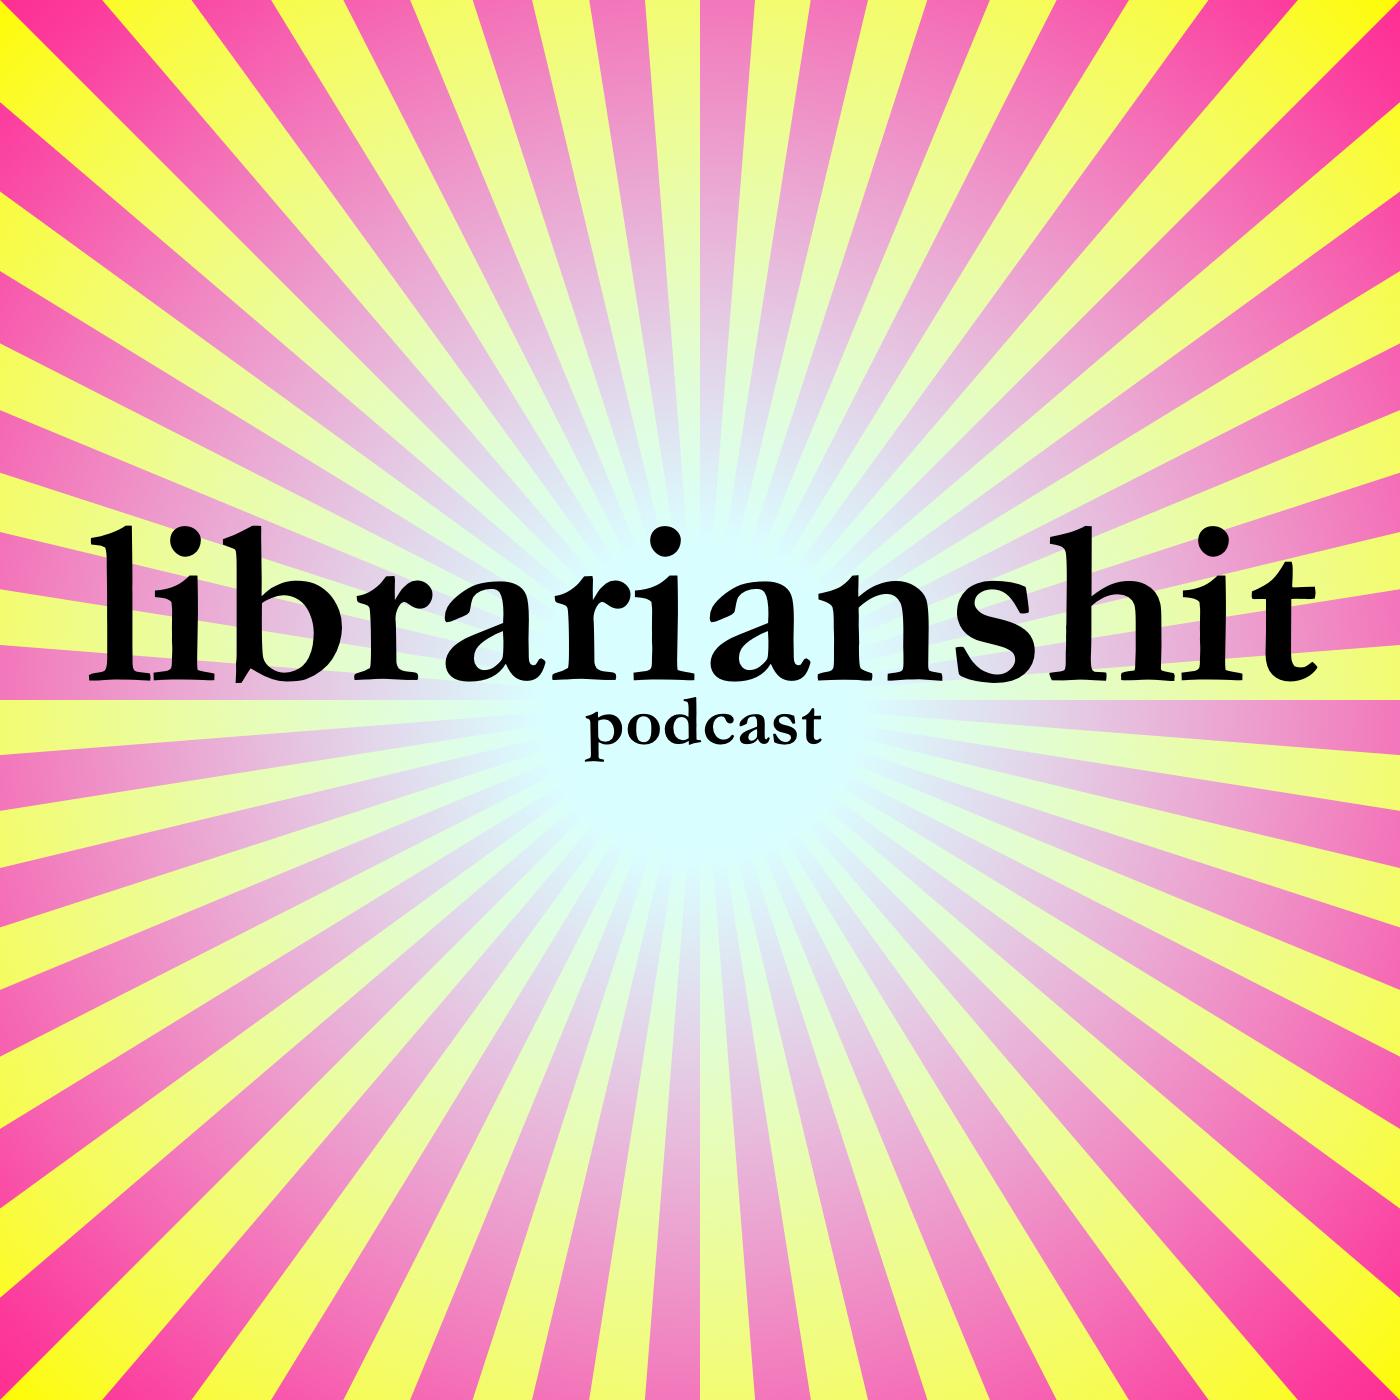 librarianshit podcast